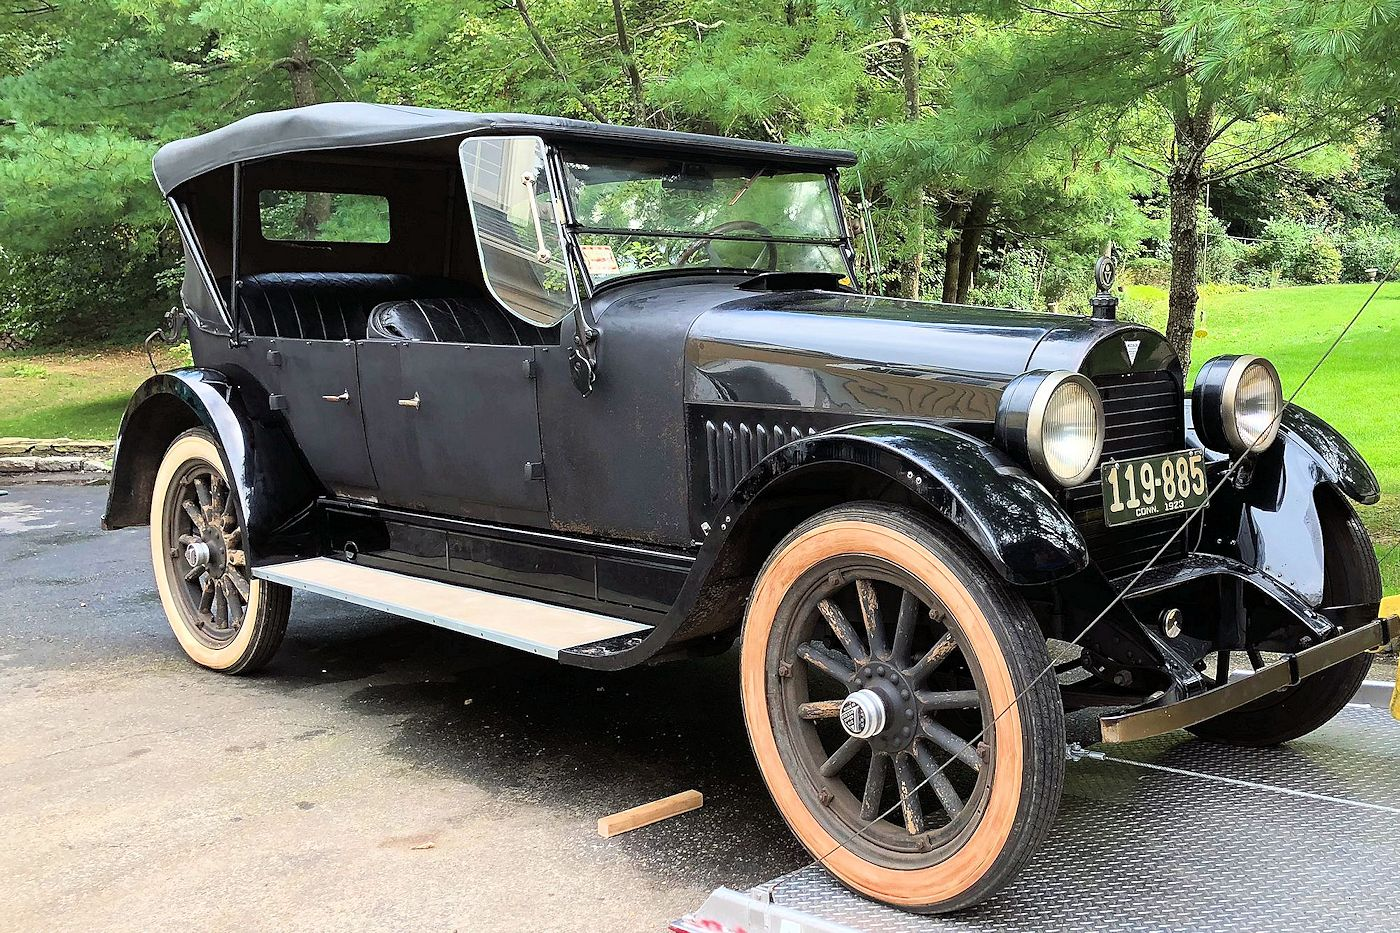 1922 Hudson restoration by Stu Laidlaw